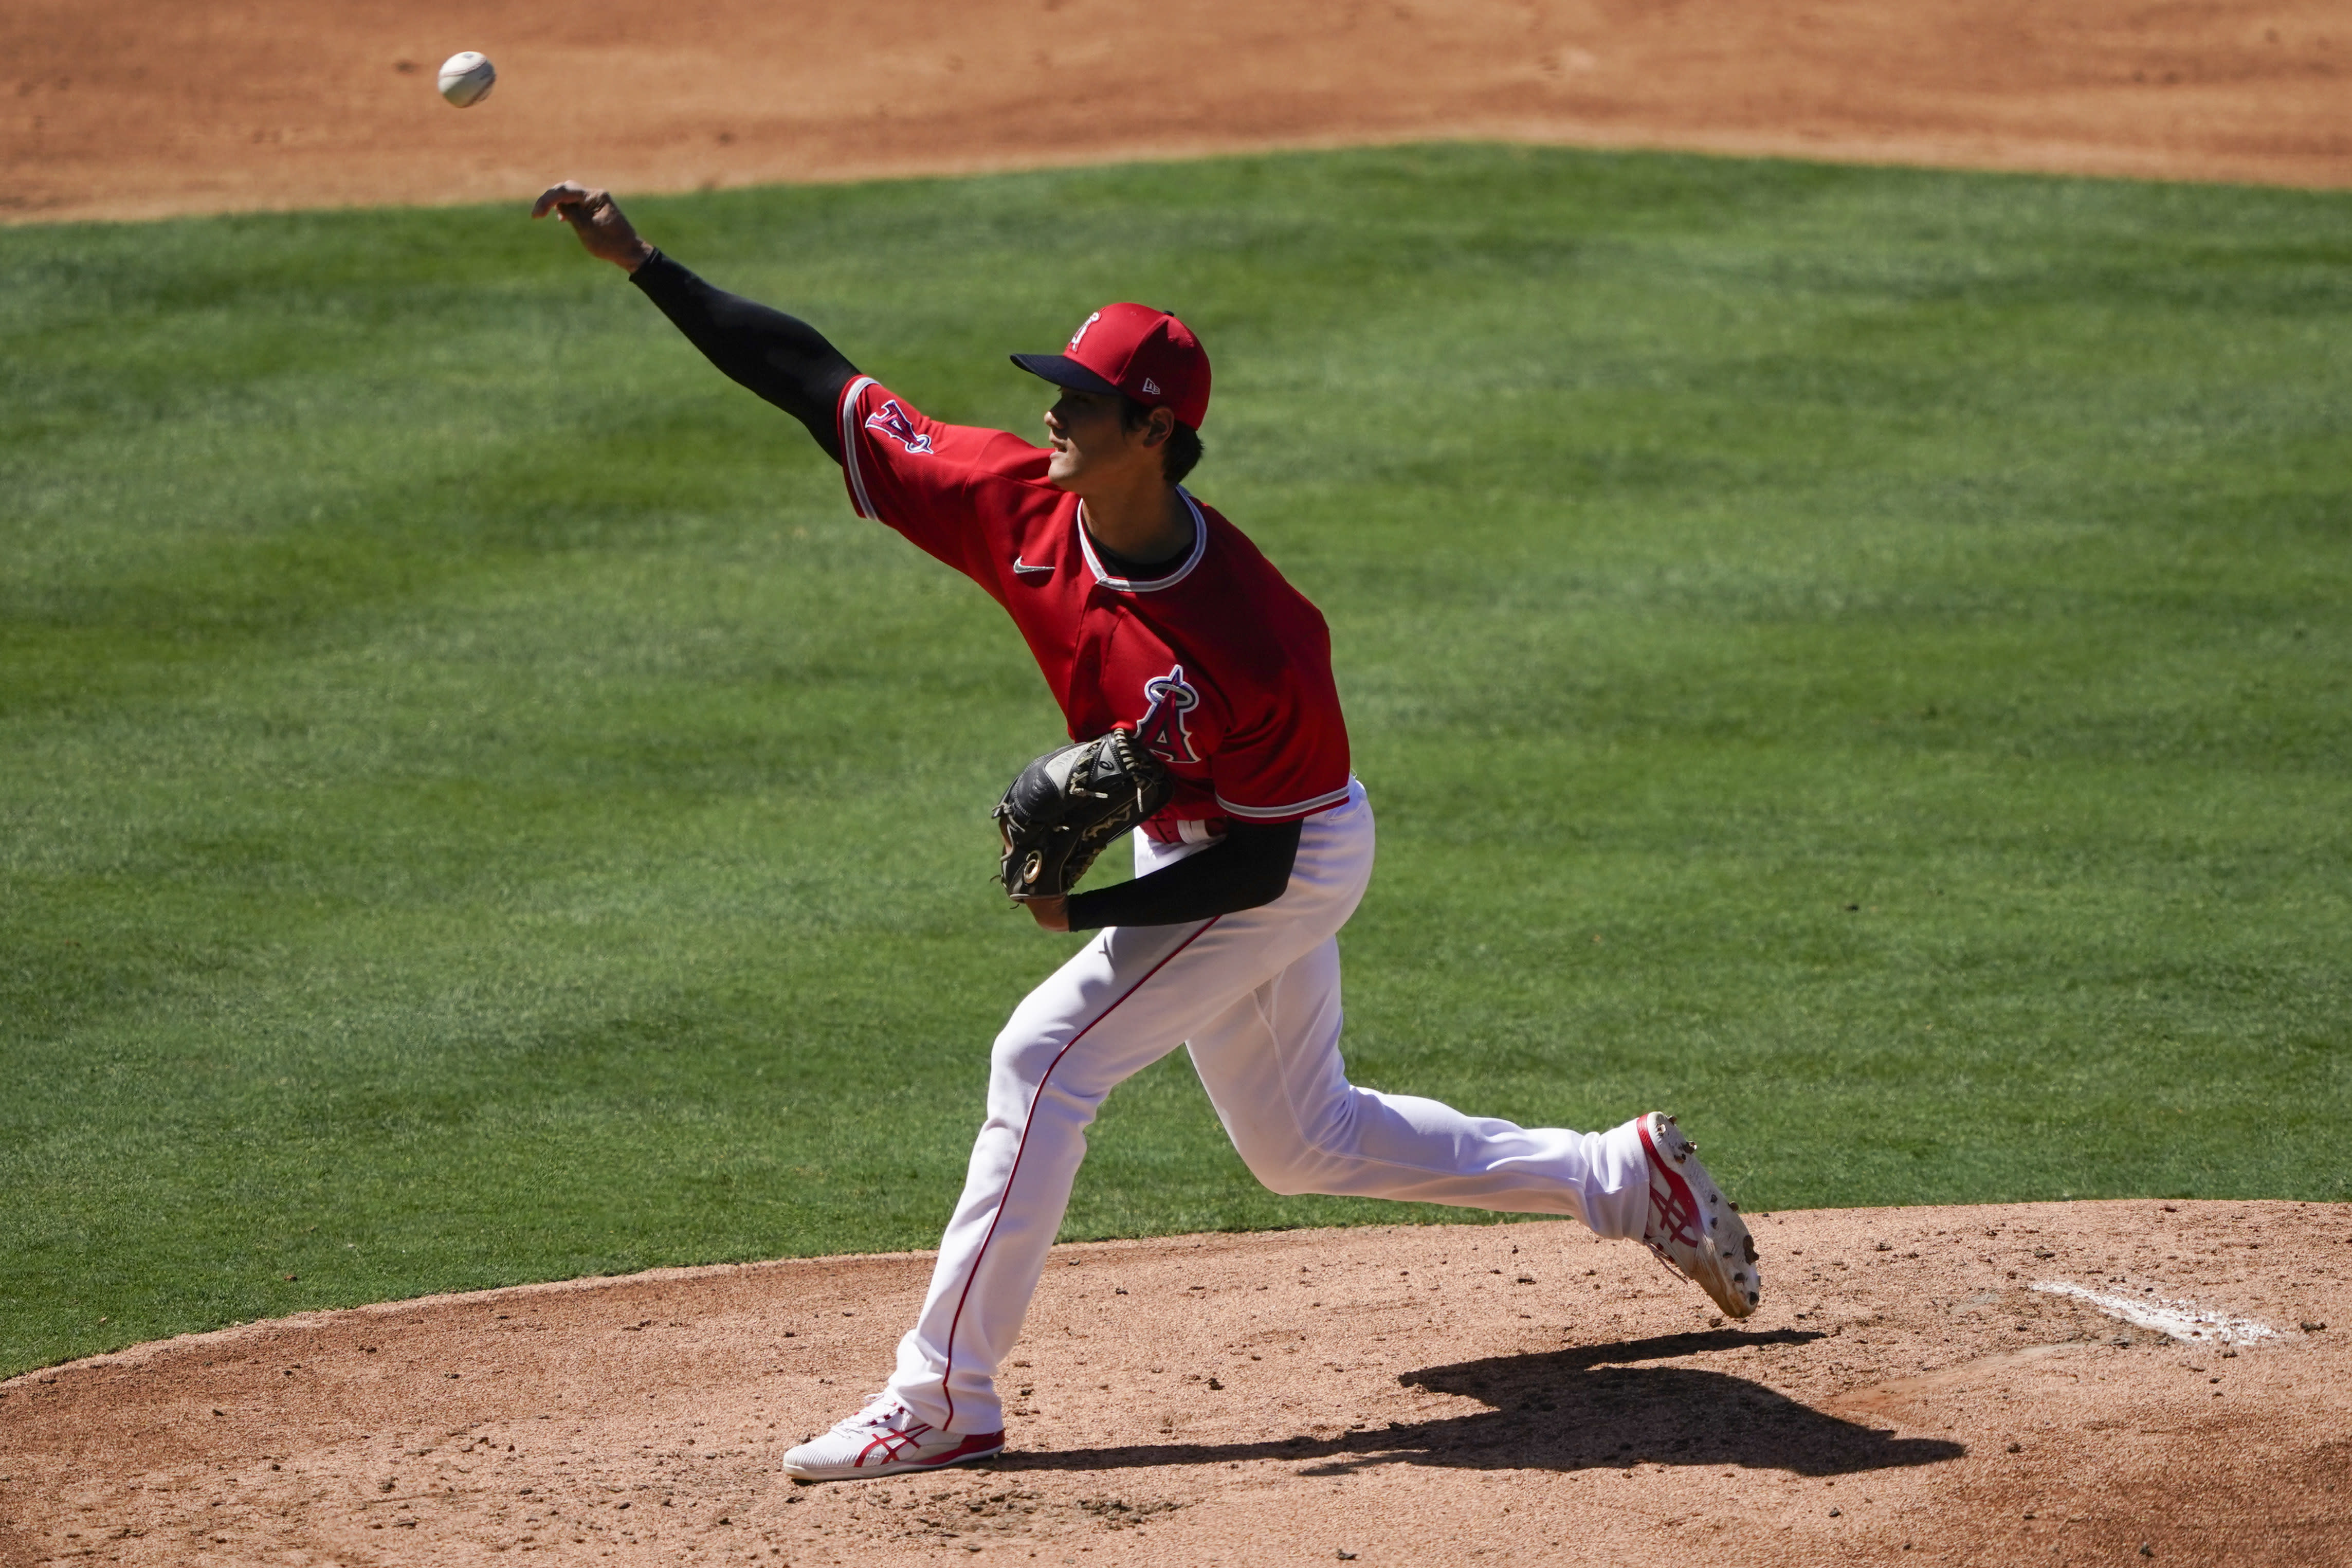 Los Angeles Angels' Shohei Ohtani pitches during an intrasquad game at baseball practice at Angel Stadium on Tuesday, July 7, 2020, in Anaheim, Calif. (AP Photo/Ashley Landis)